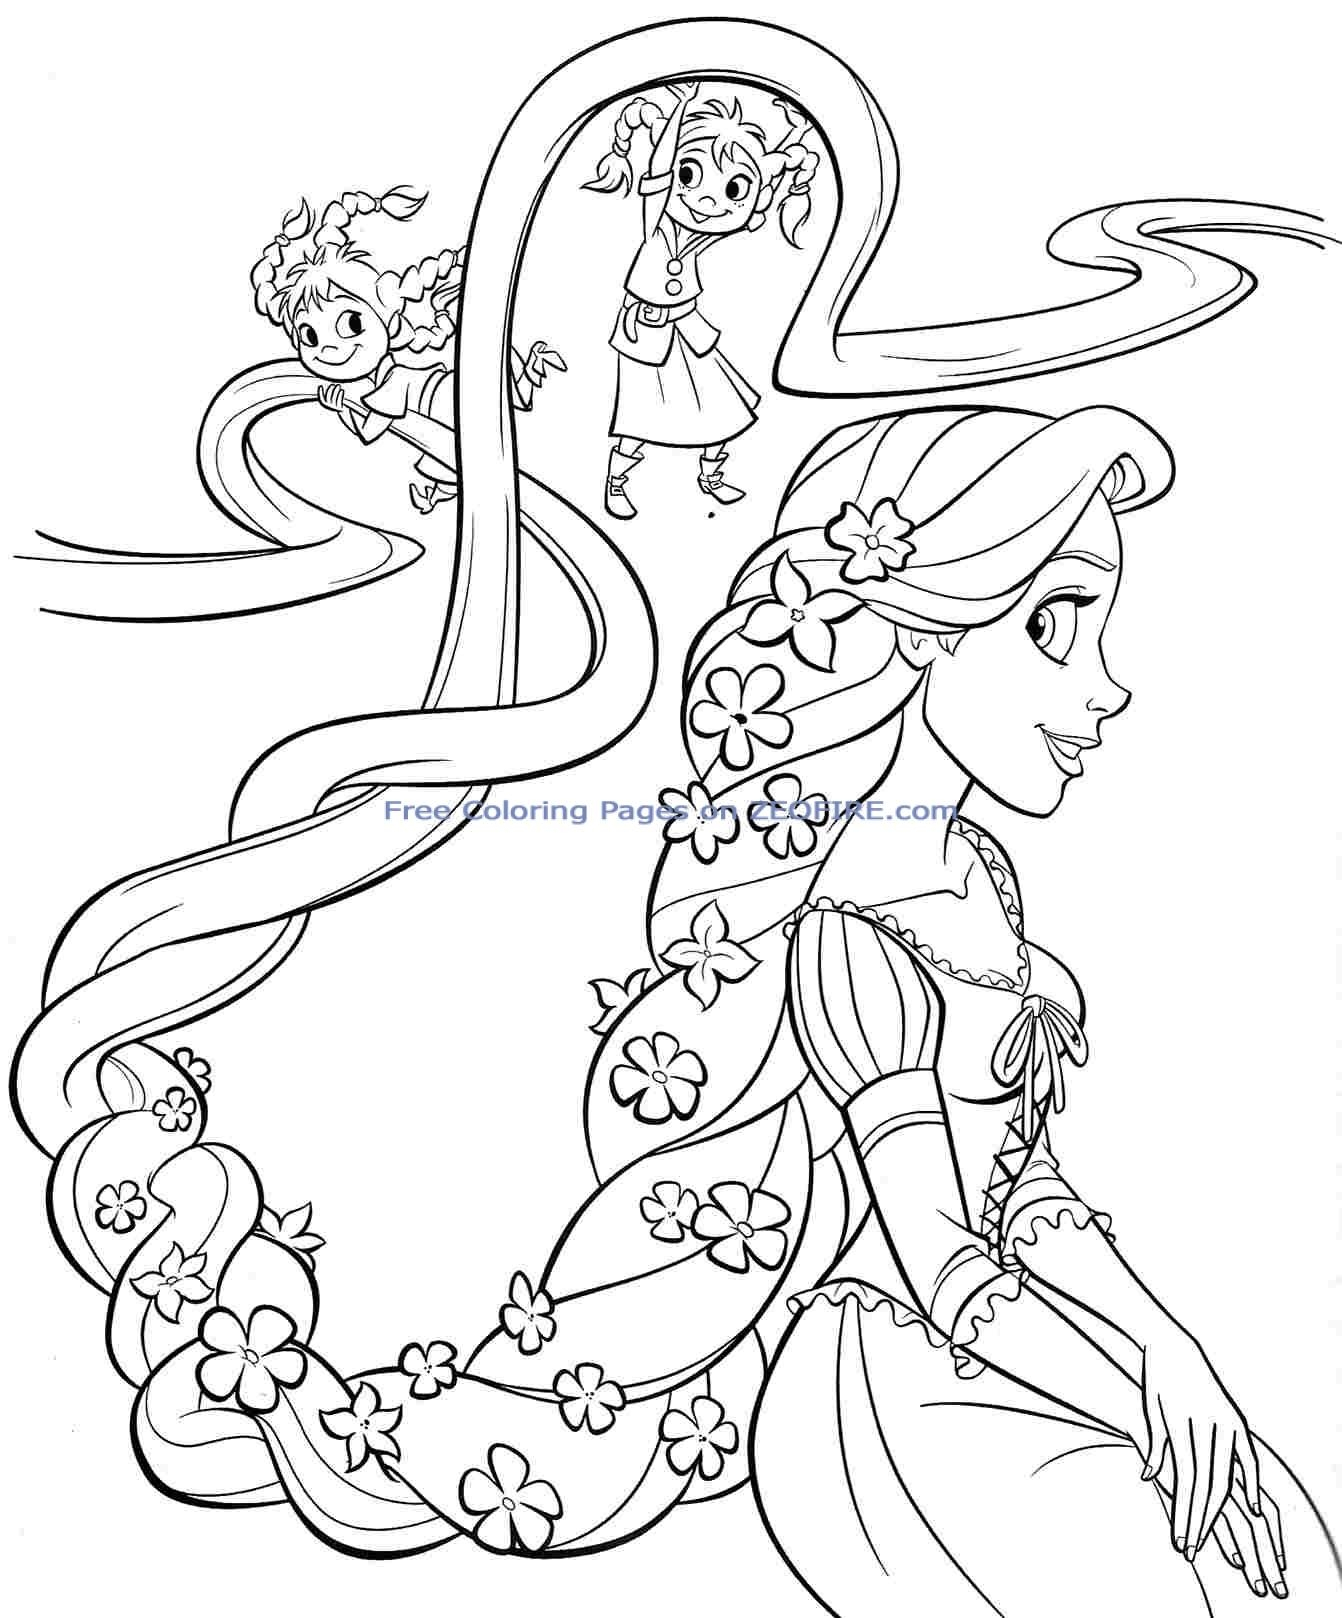 Baby Princess Coloring Pages To Download And Print For Free Free Printable Princess Coloring Pages